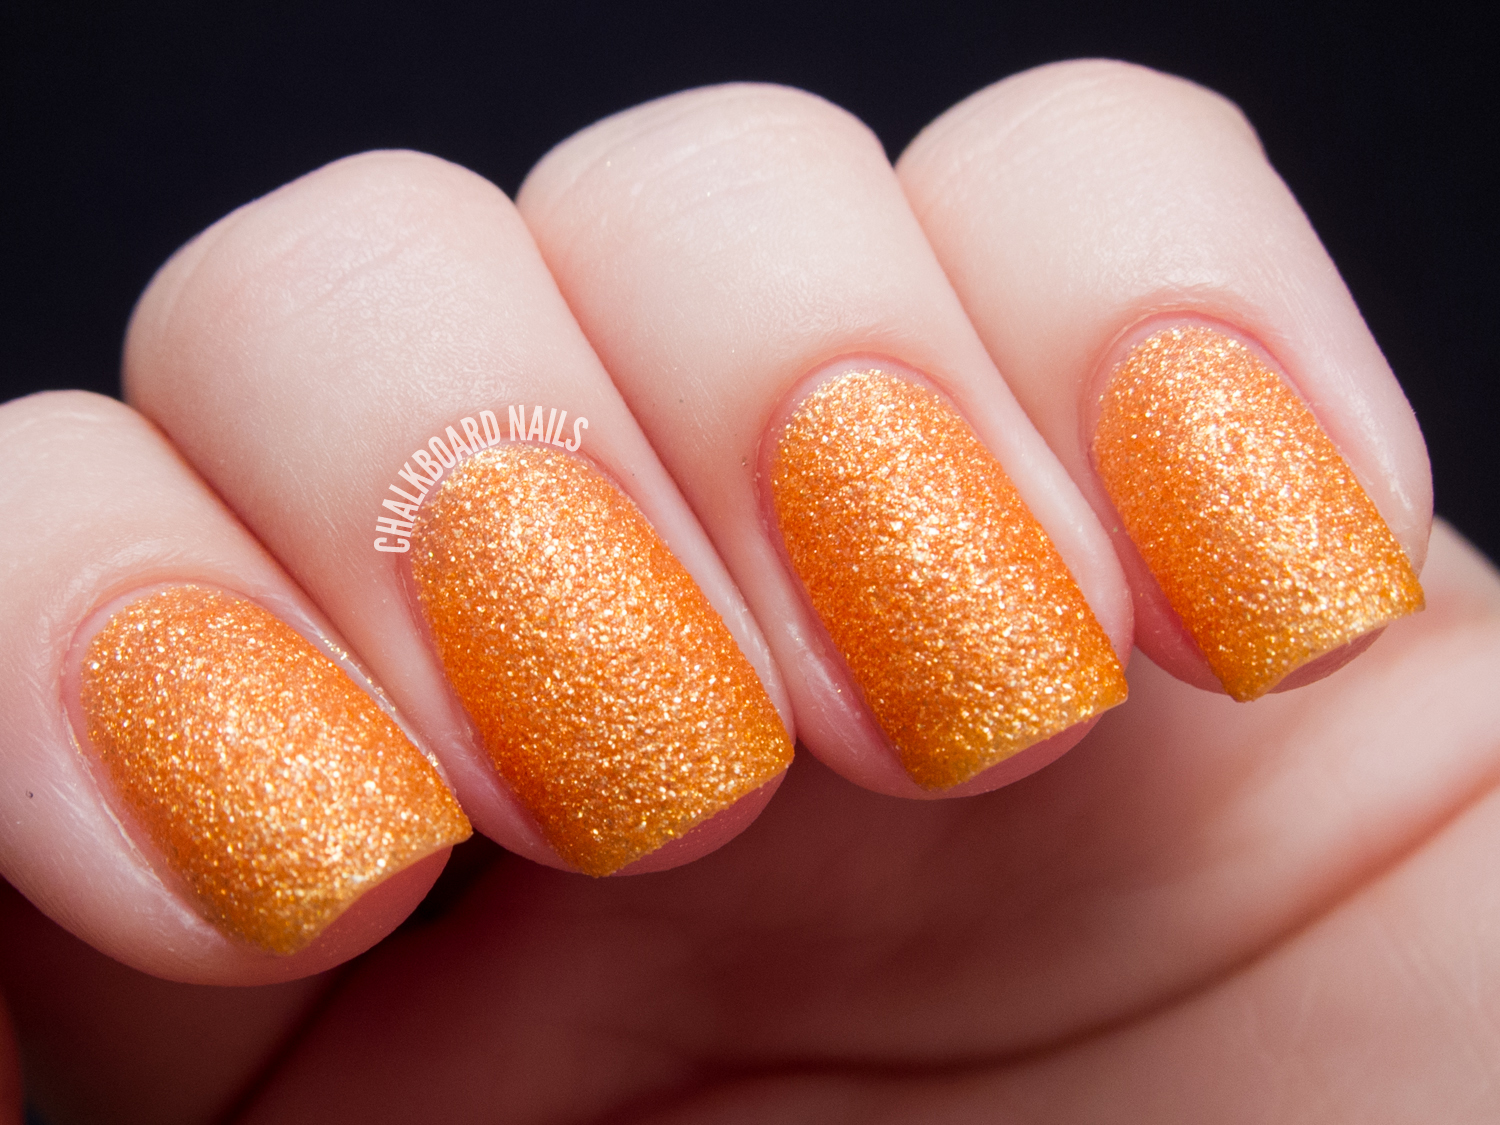 Zoya PixieDust Summer Edition Swatches and Review